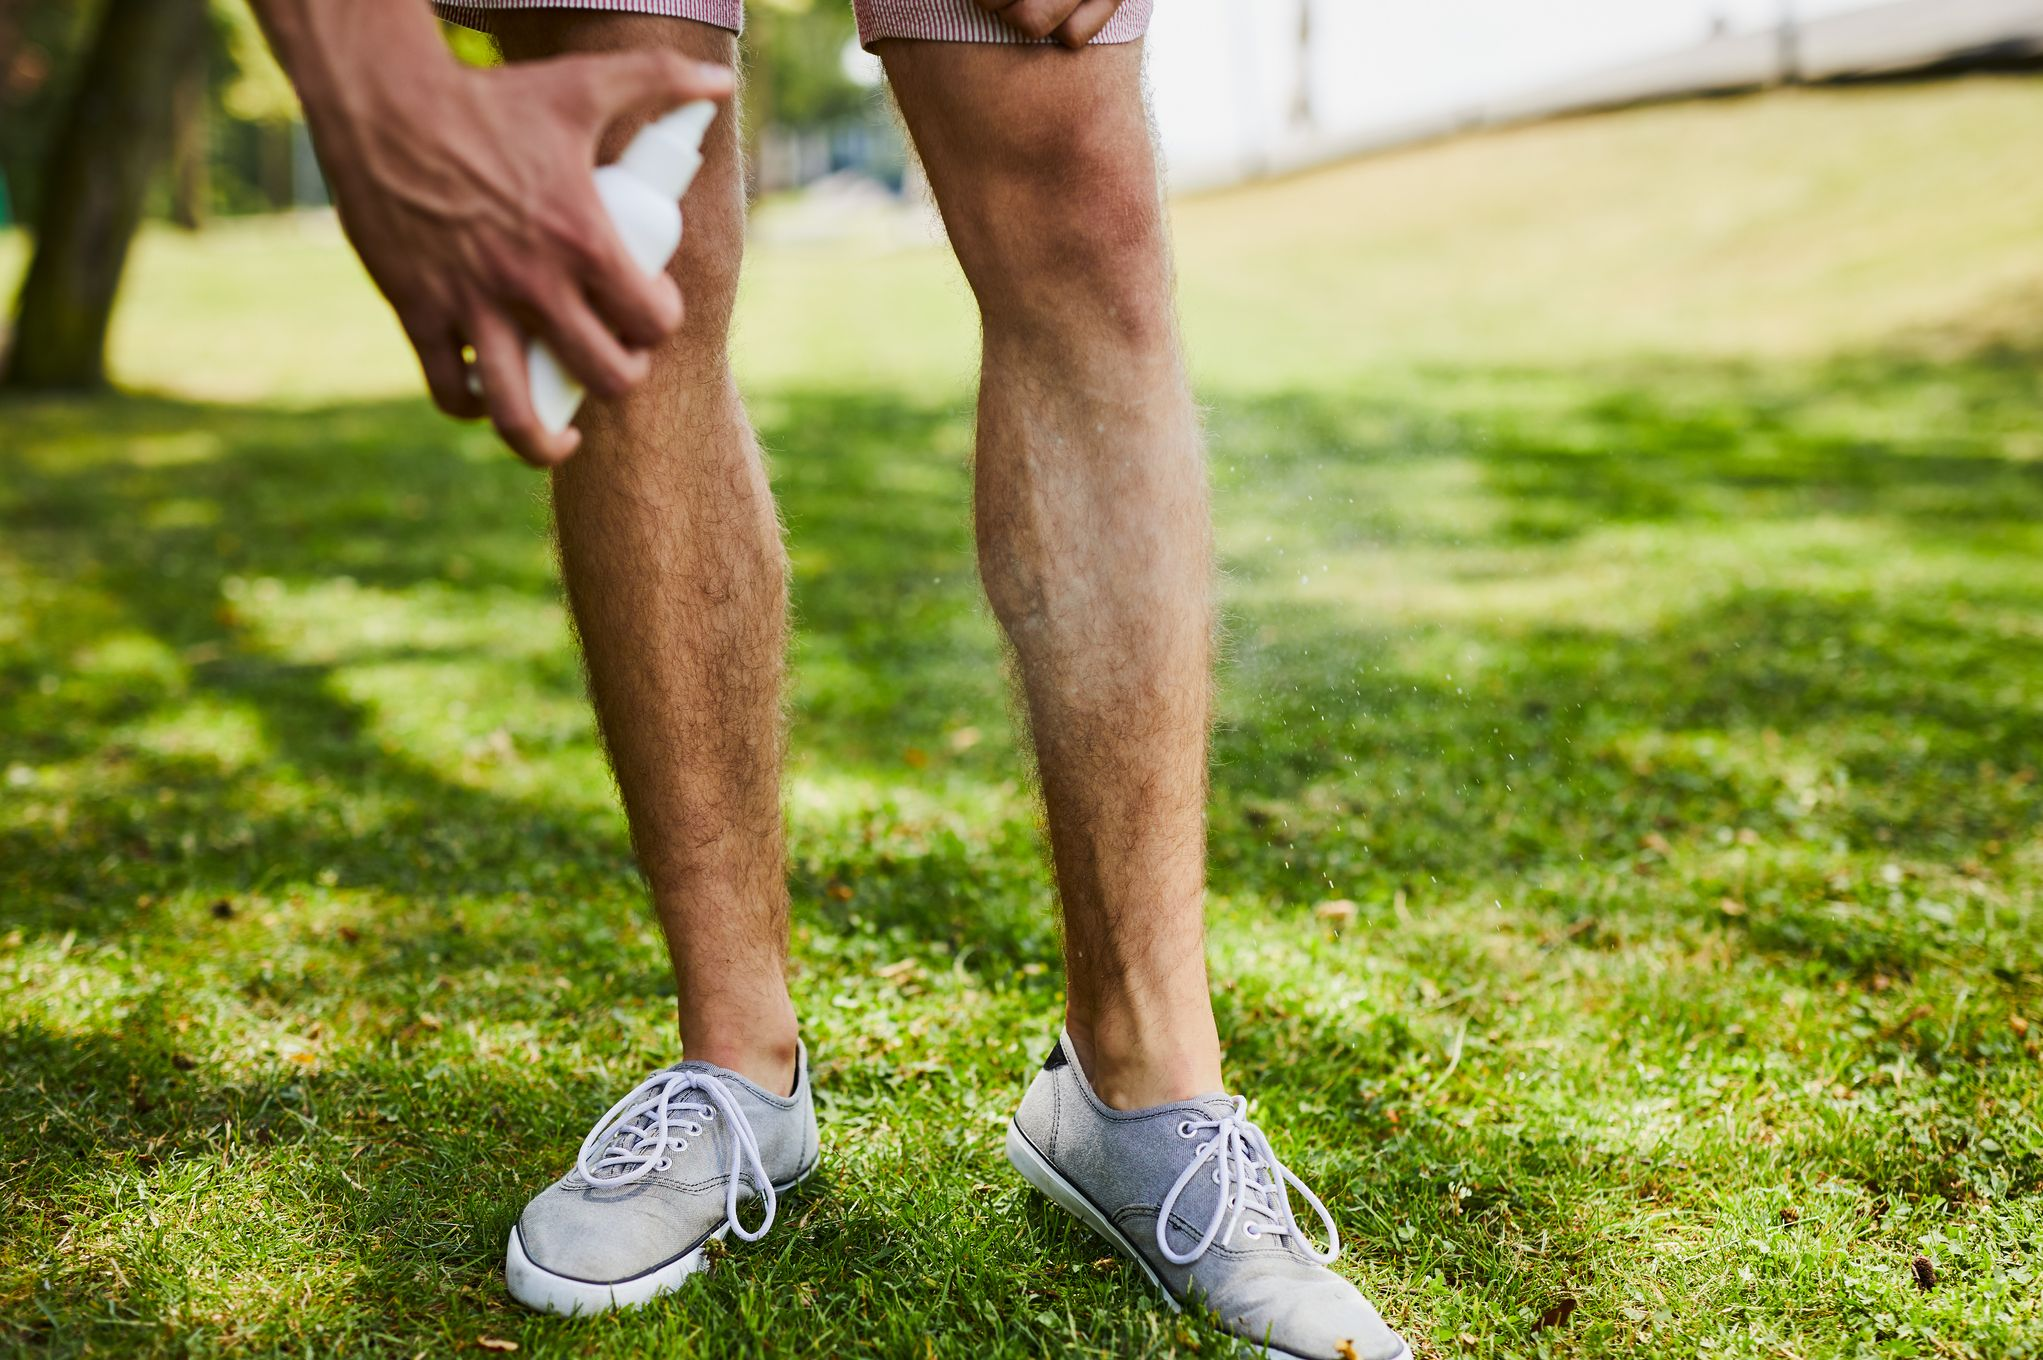 Close-up of a man spraying insect repellent on his legs while outdoors